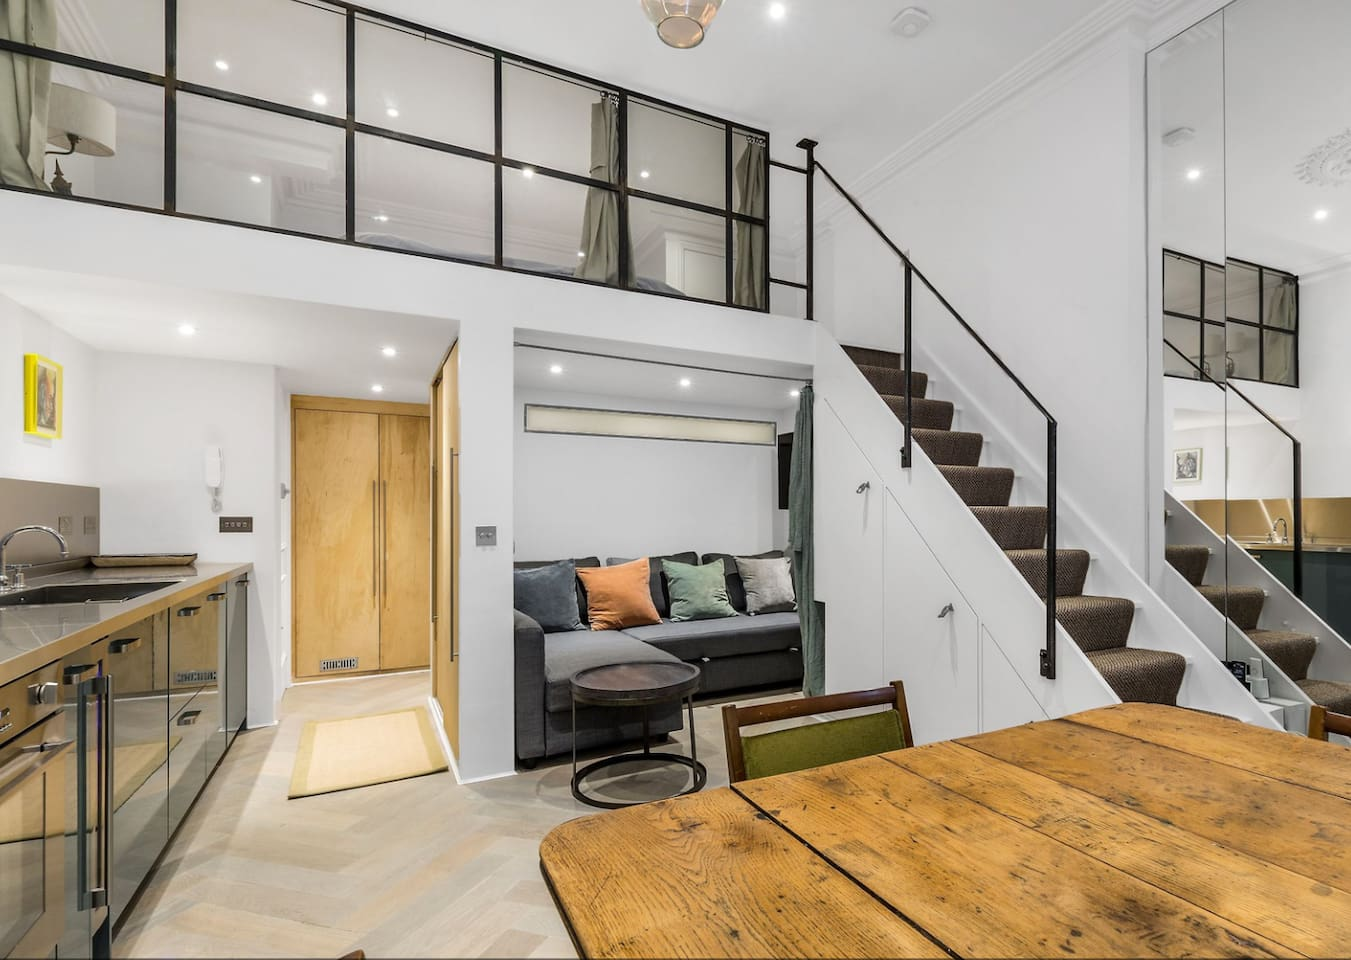 Studio overview image showing the galley kitchen, TV zone, stairs leading to the enclosed sleeping area